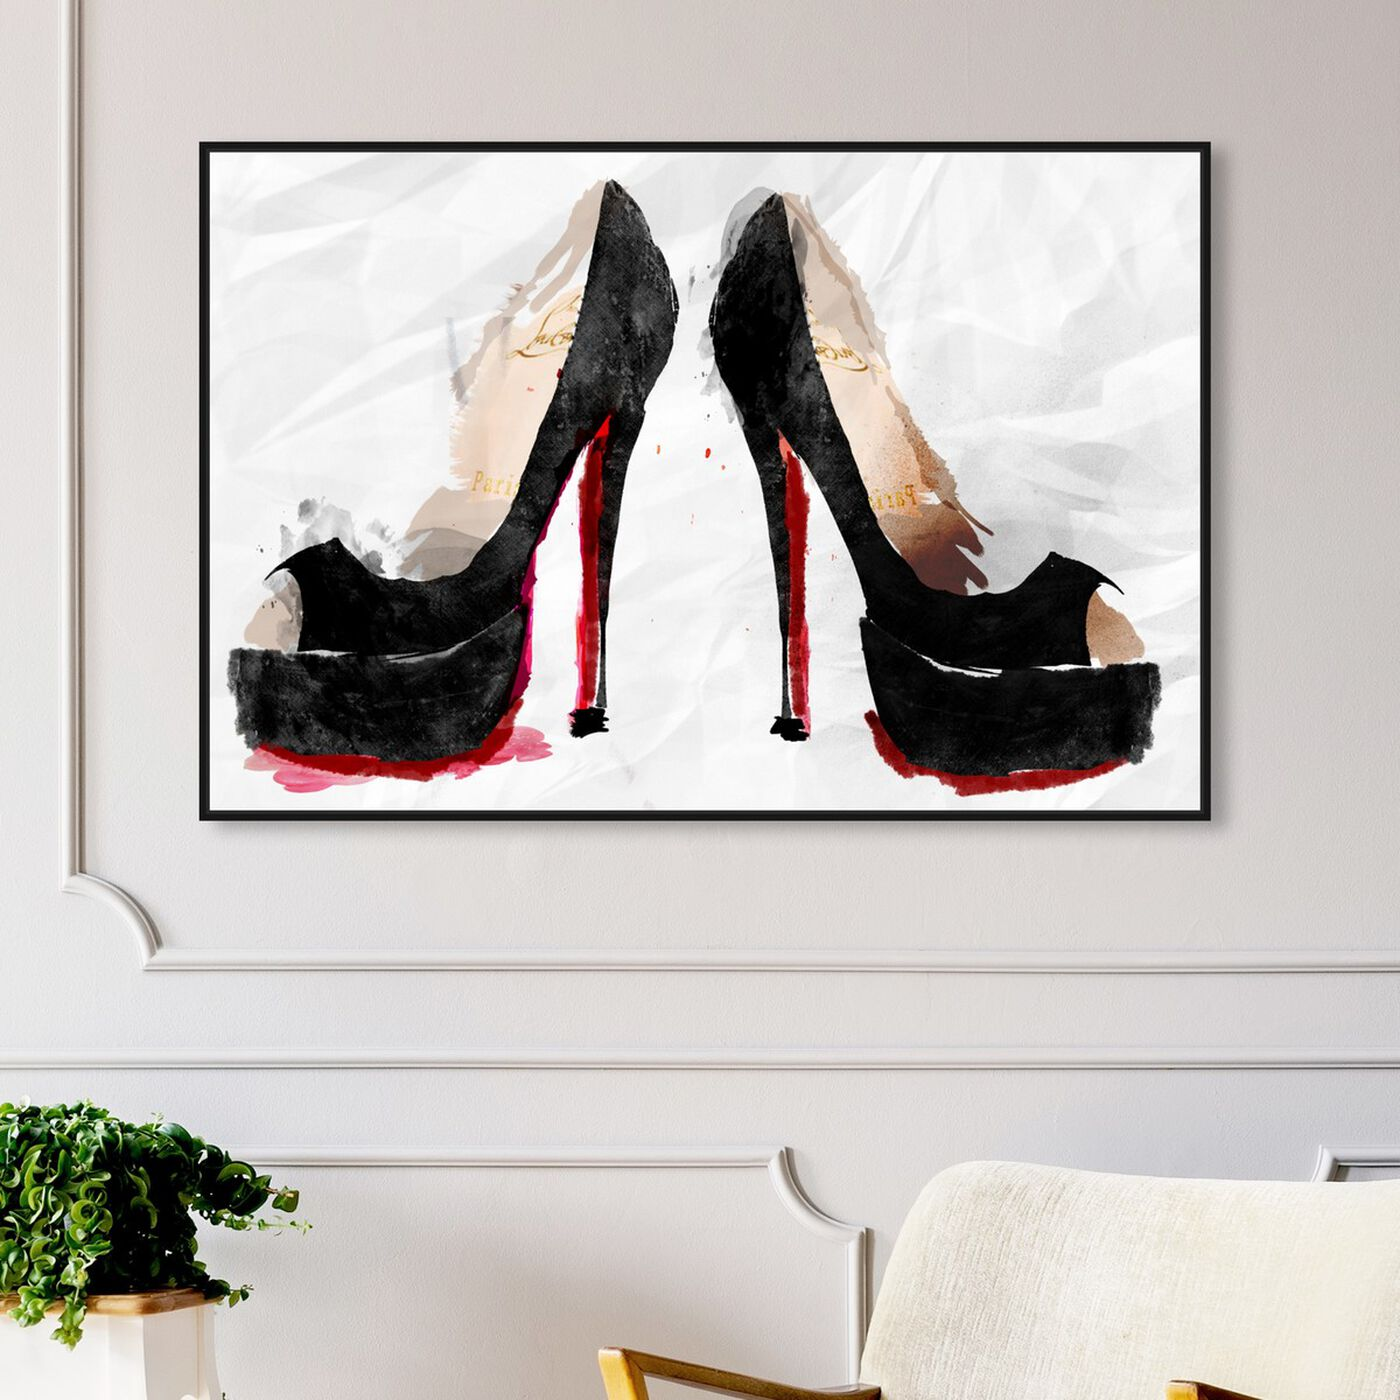 Hanging view of Take a Stand featuring fashion and glam and shoes art.